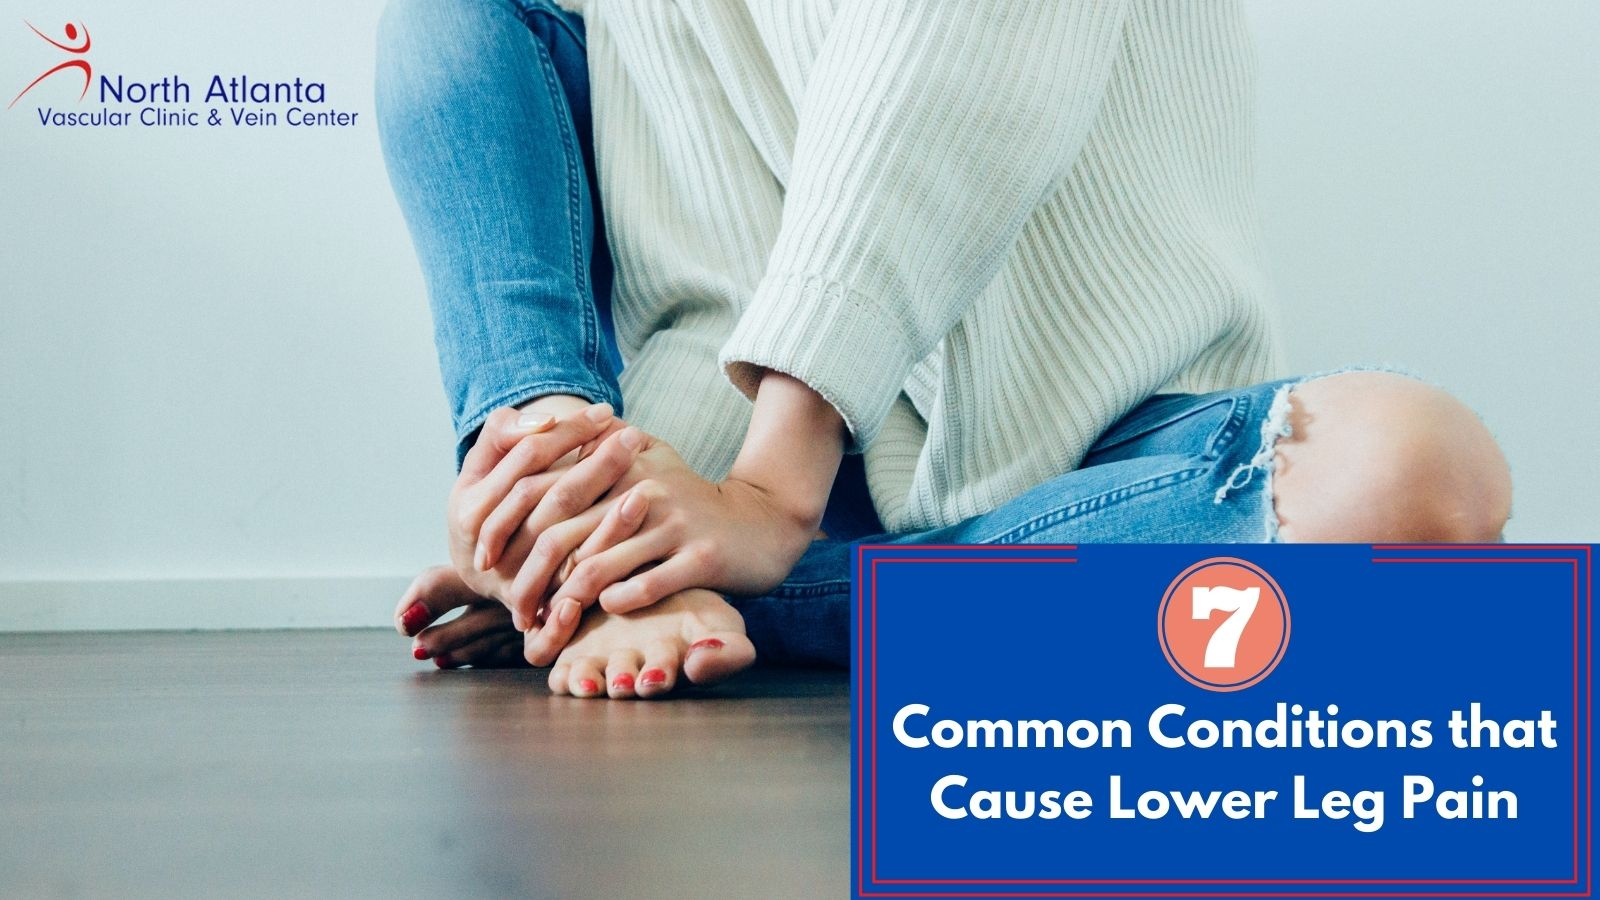 7 Common Conditions that Cause Lower Leg Pain